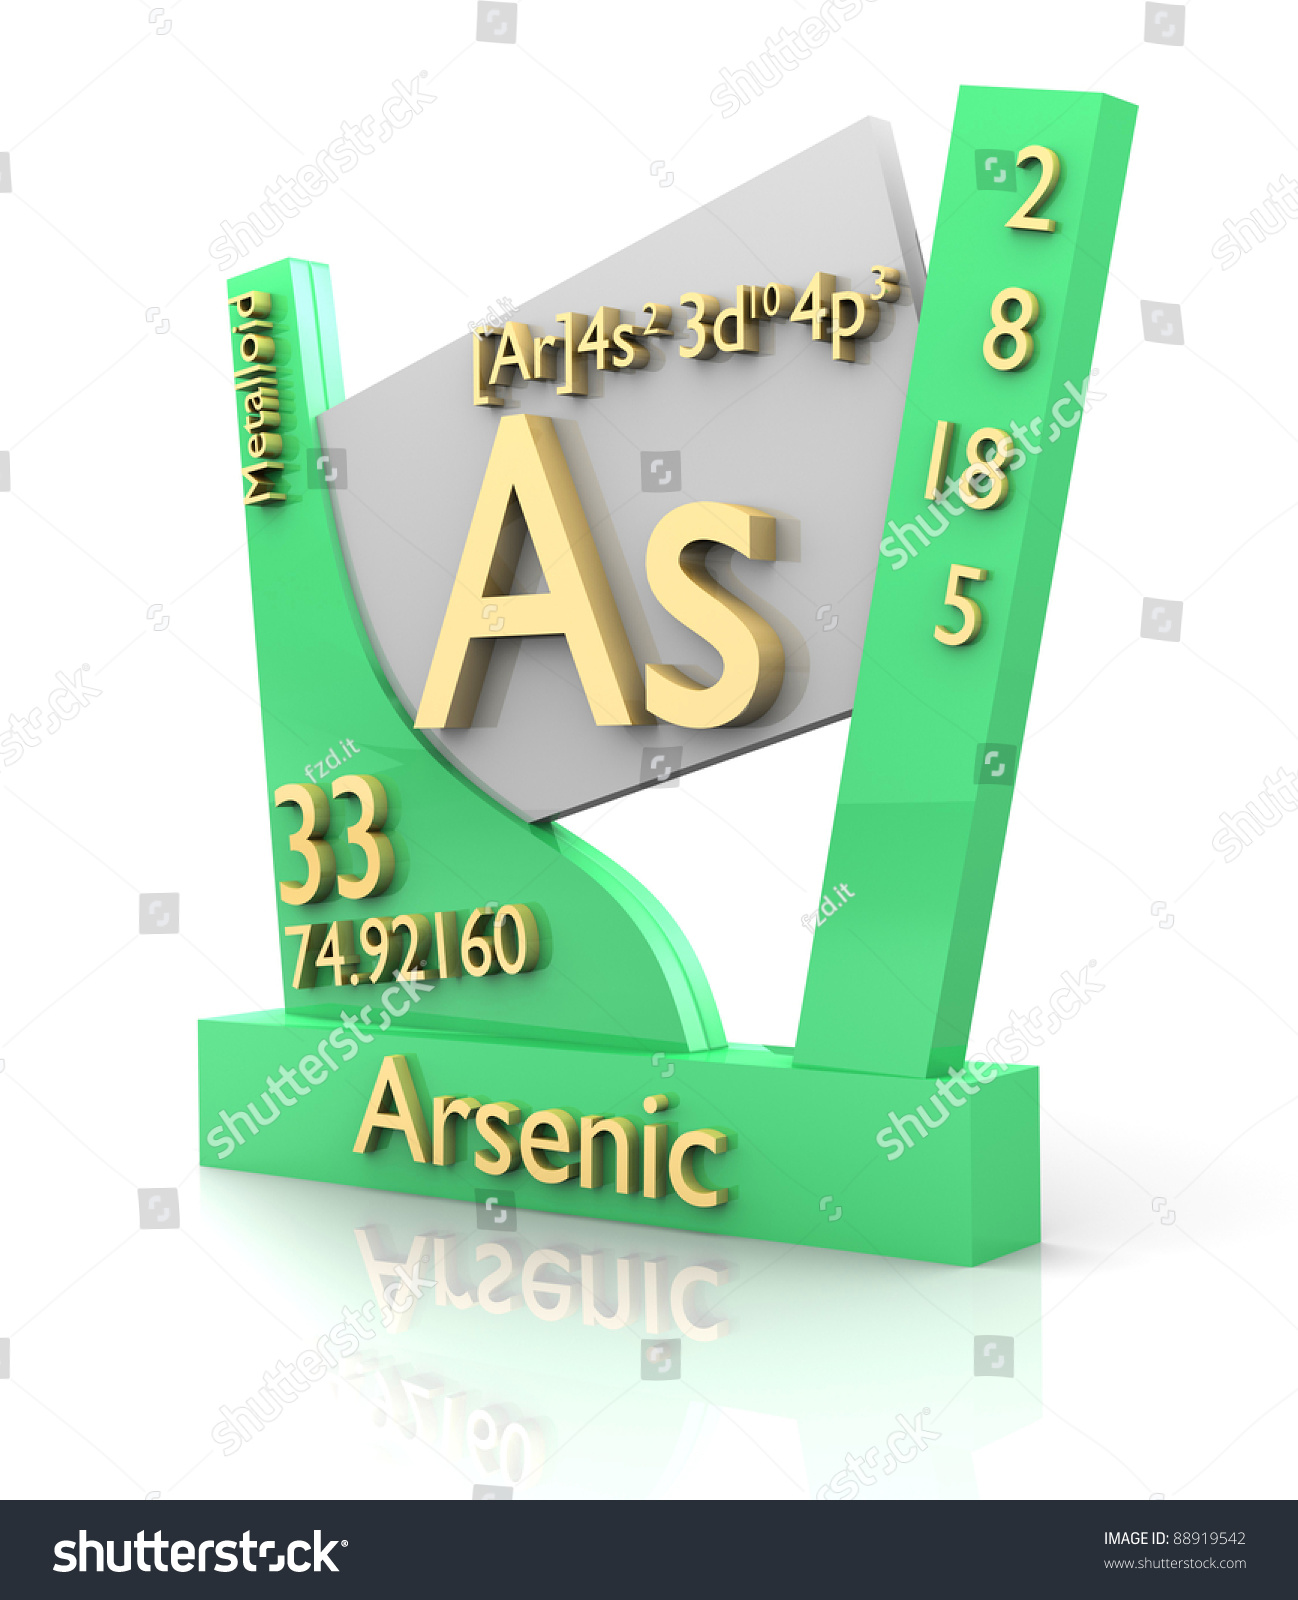 Arsenic form periodic table elements 3d stock illustration arsenic form periodic table of elements 3d made biocorpaavc Image collections